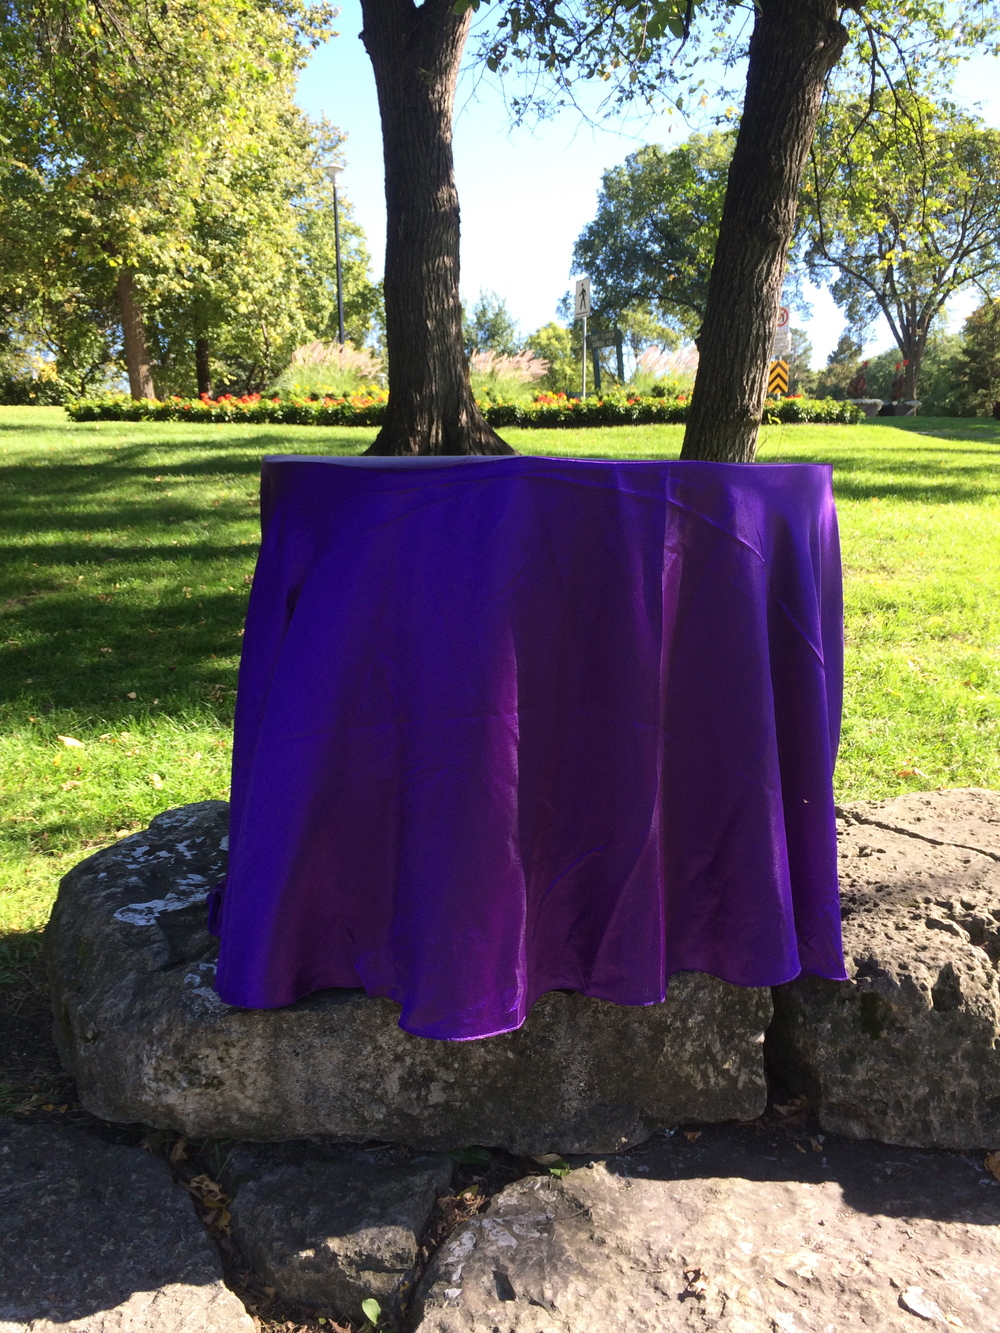 PURPLE SATIN TABLE CLOTH